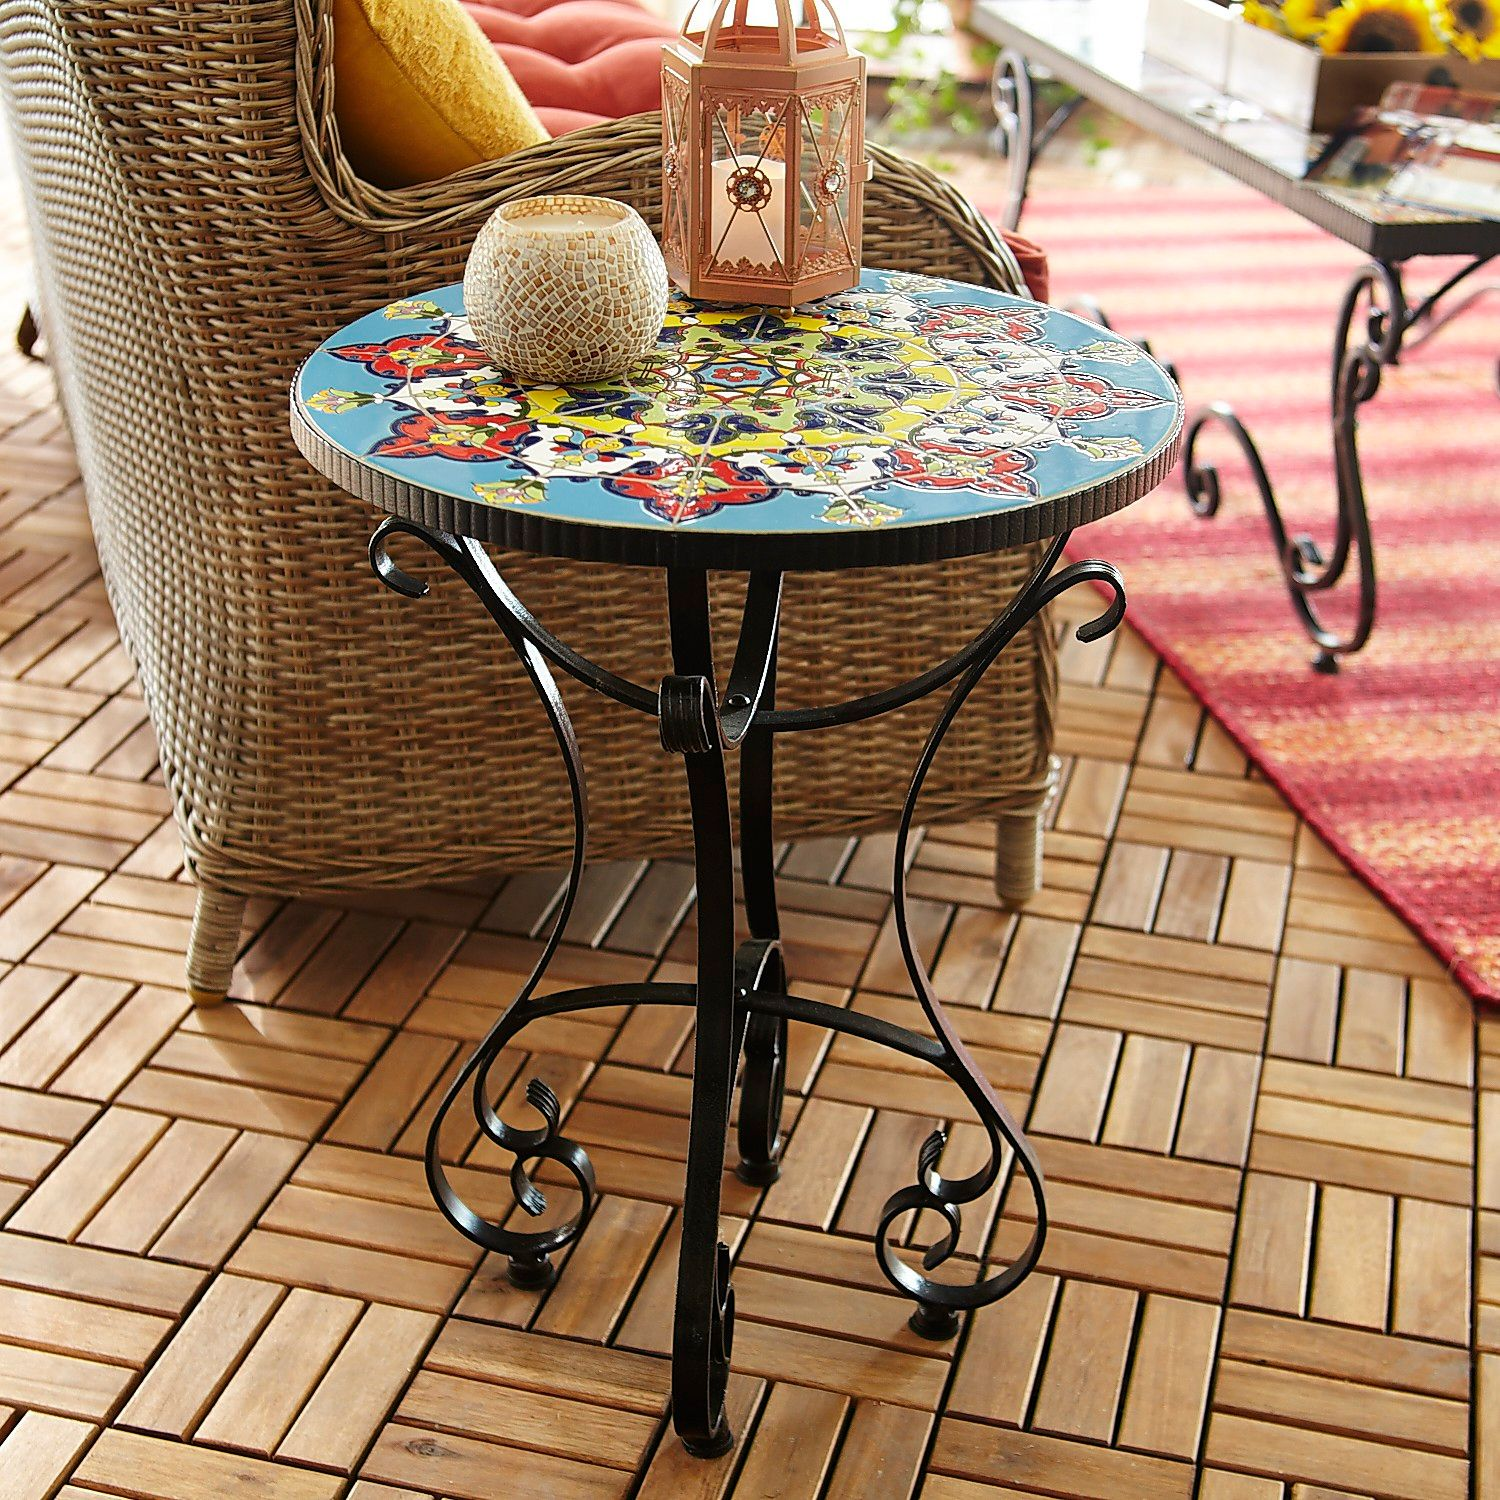 emilio mosaic accent table pier imports indoor concrete outdoor and chairs wall hanging wine rack square lucite side with basket drawers grey coffee glass end tables ikea gold